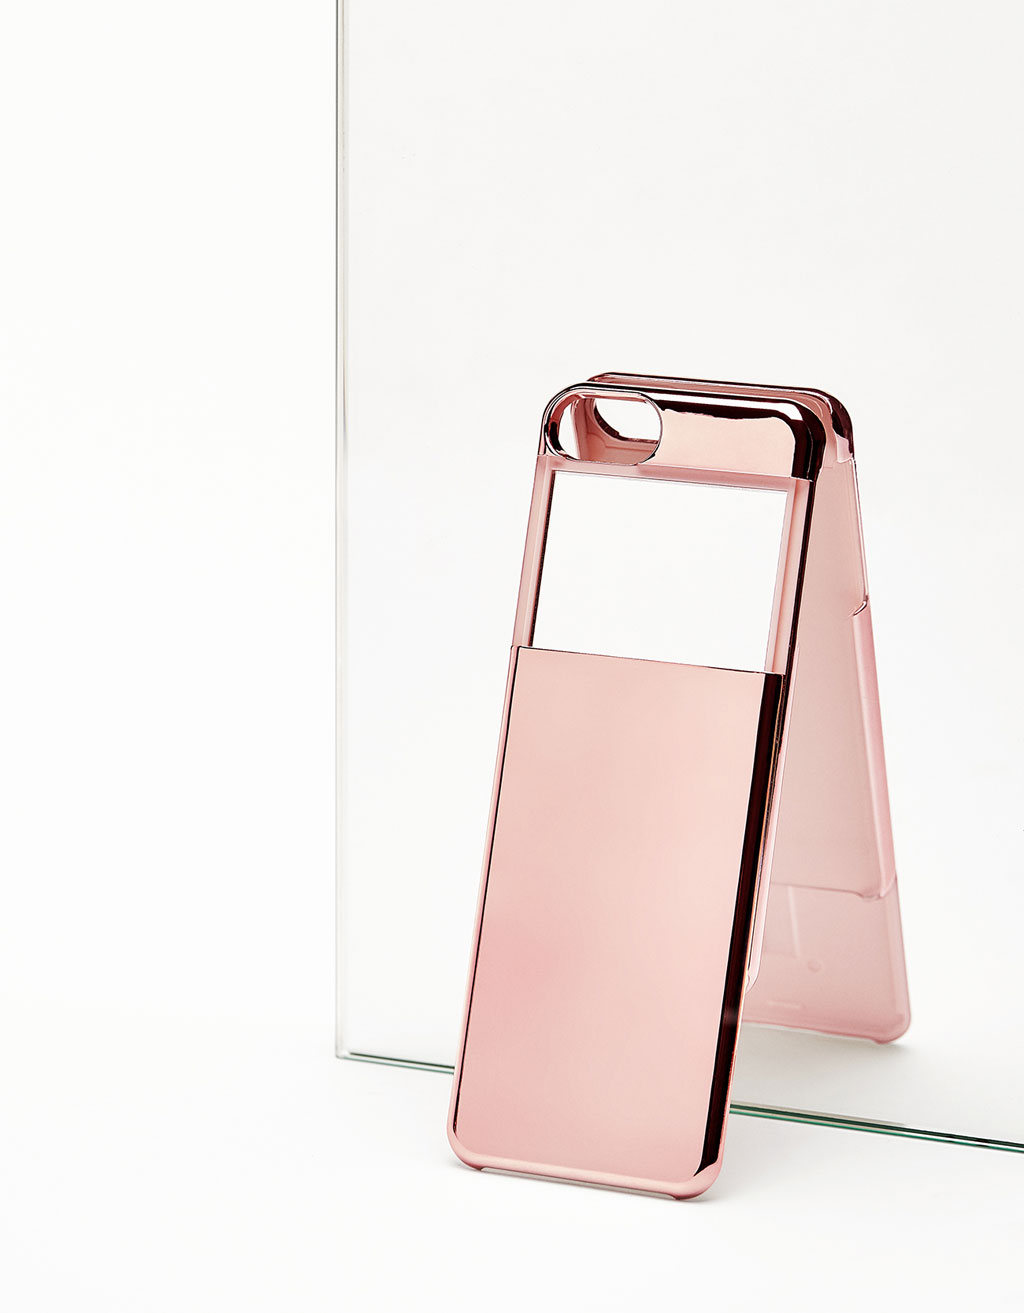 Metallic mirrored iPhone 7 cover